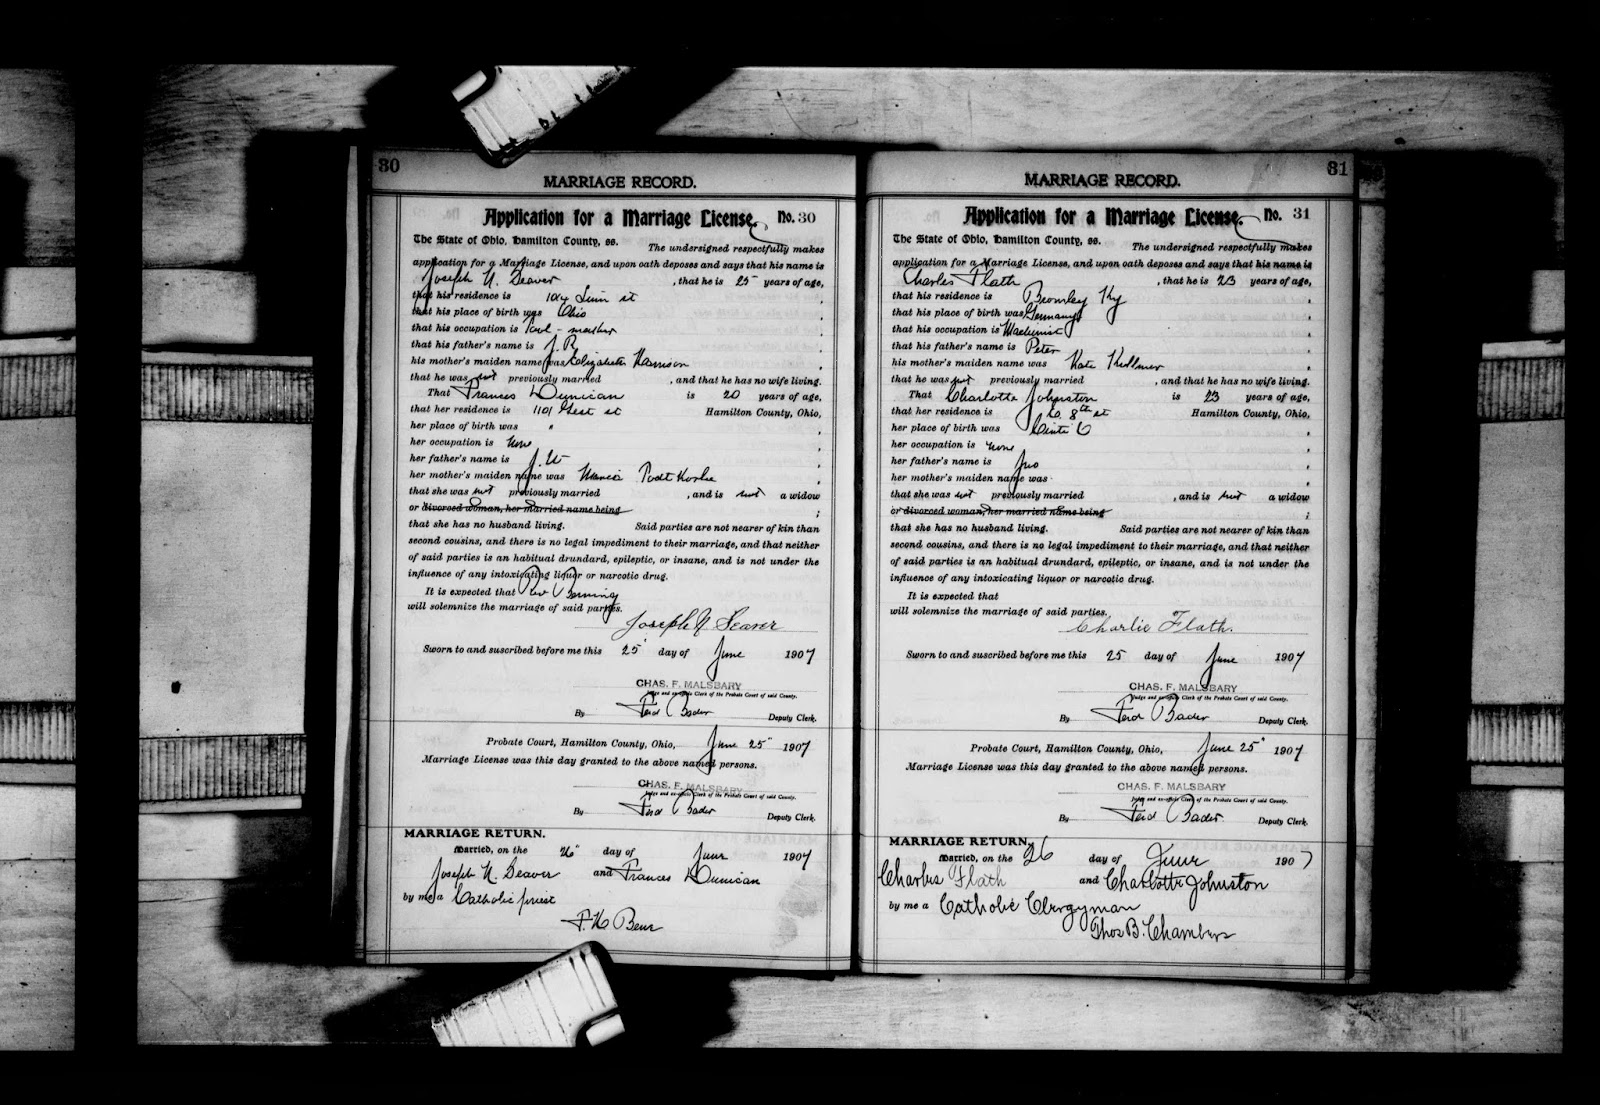 Genea musings 100613 here is the record for the marriage of joseph n seaver and frances dunican in hamilton county ohio on 26 june 1907 aiddatafo Choice Image